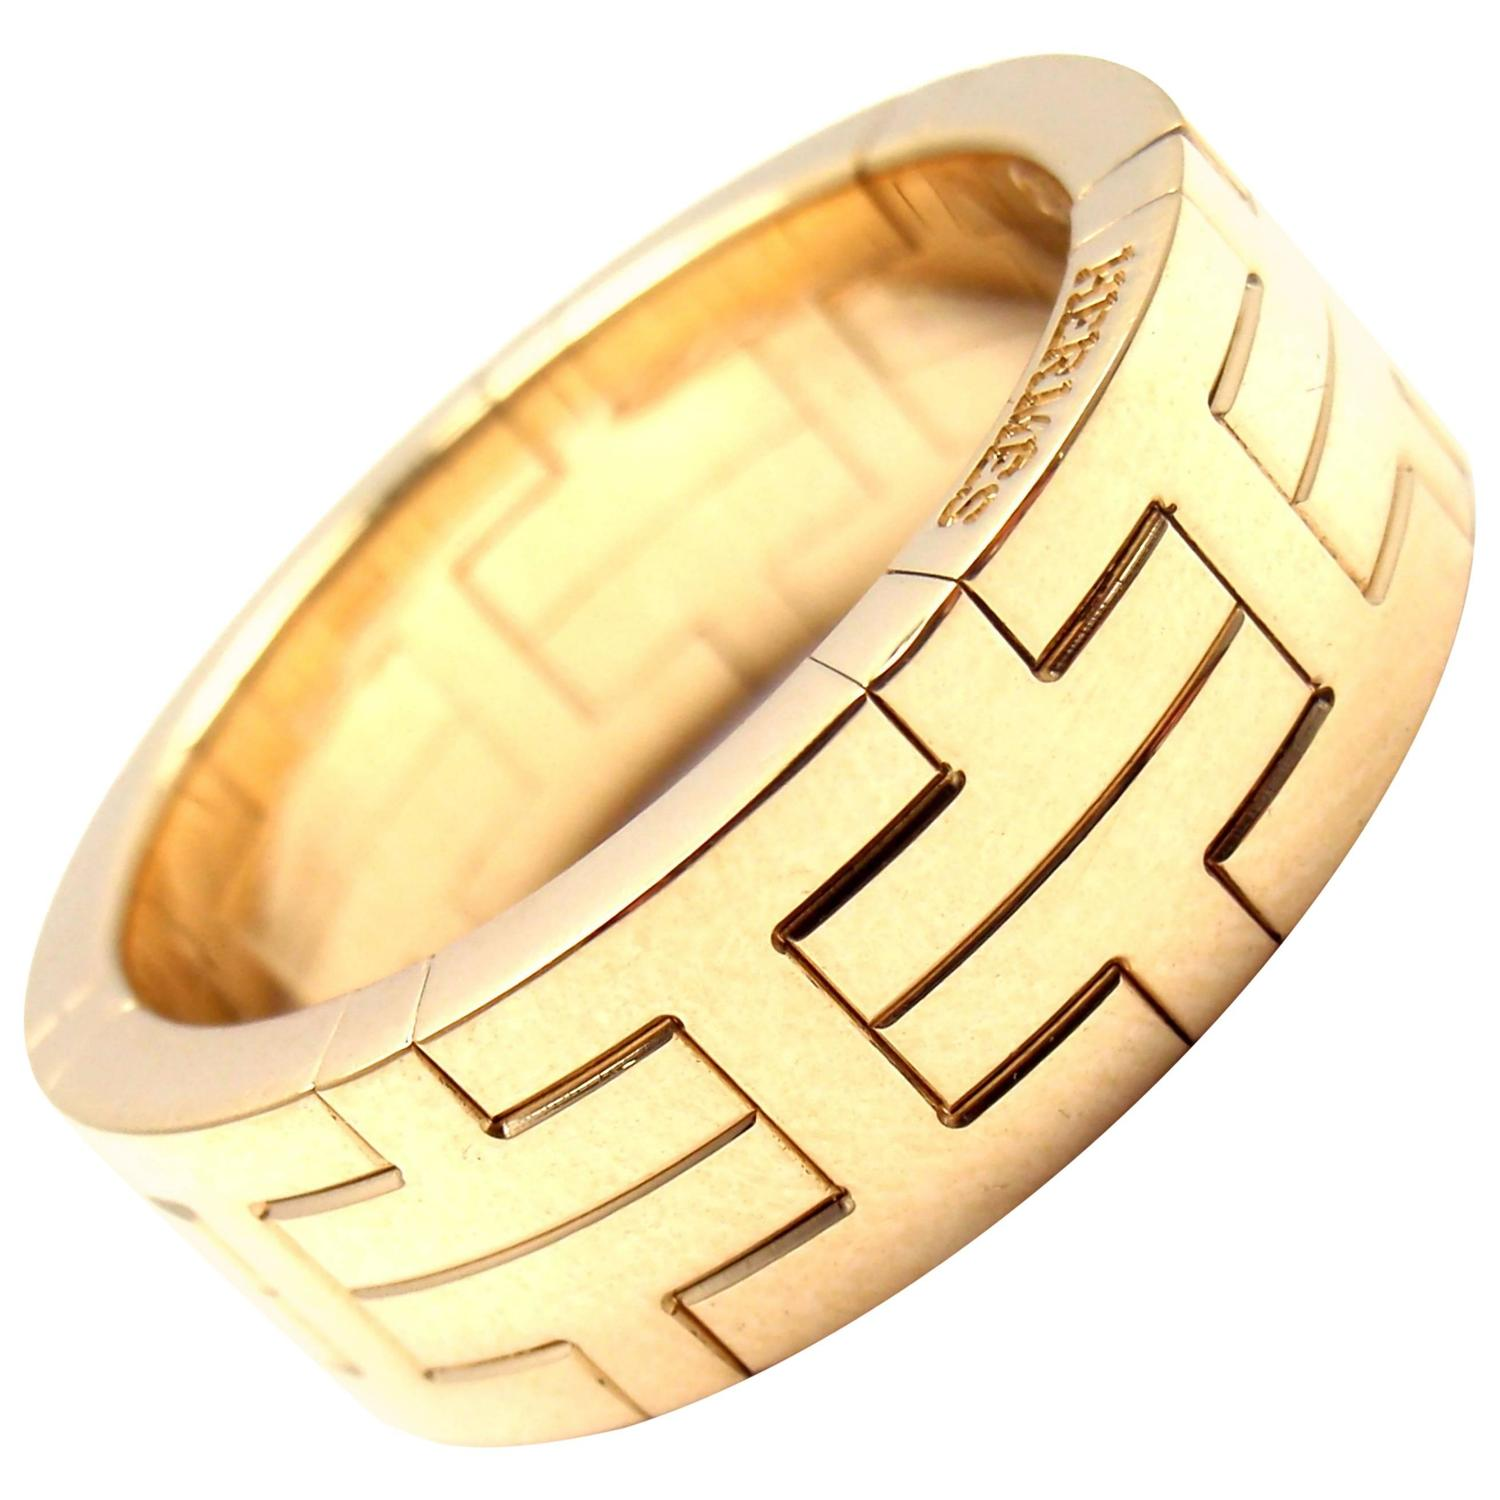 Yafa signed jewels new york ny 1stdibs page 4 - Hermes H Motif Wide Yellow Gold Band Ring